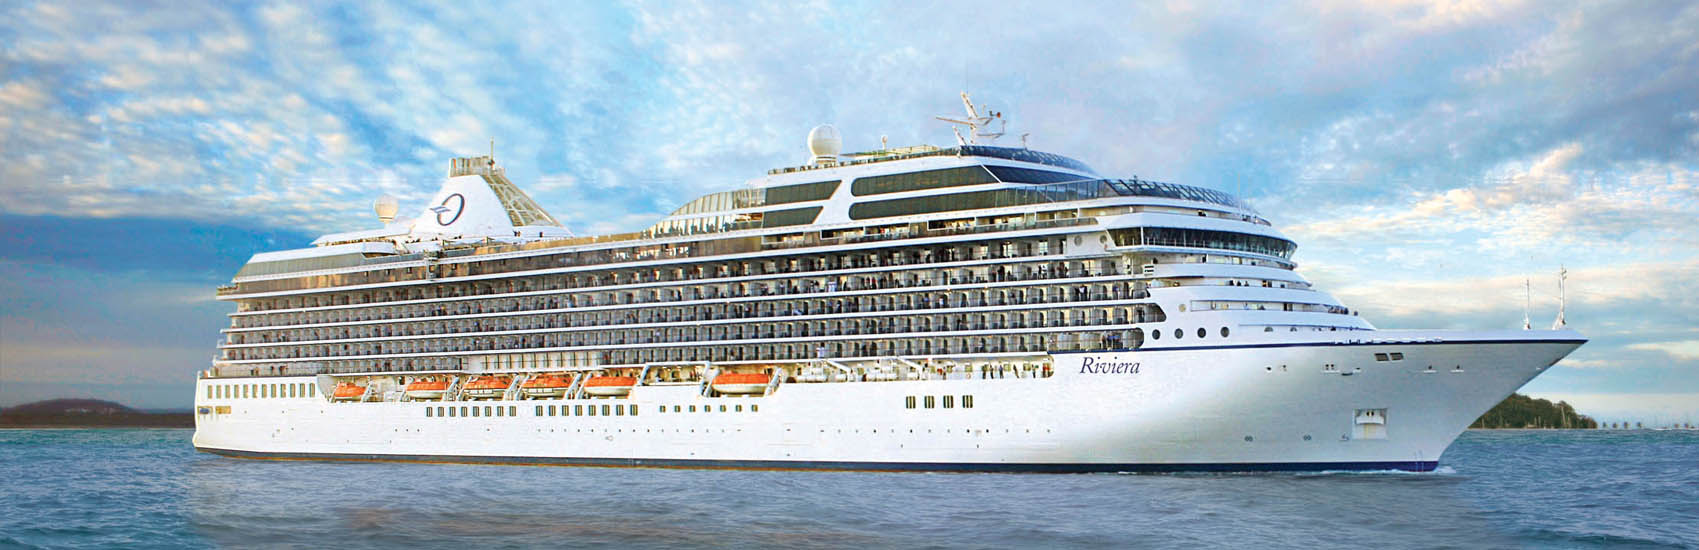 Save on Your Next Adventure with Oceania Cruises